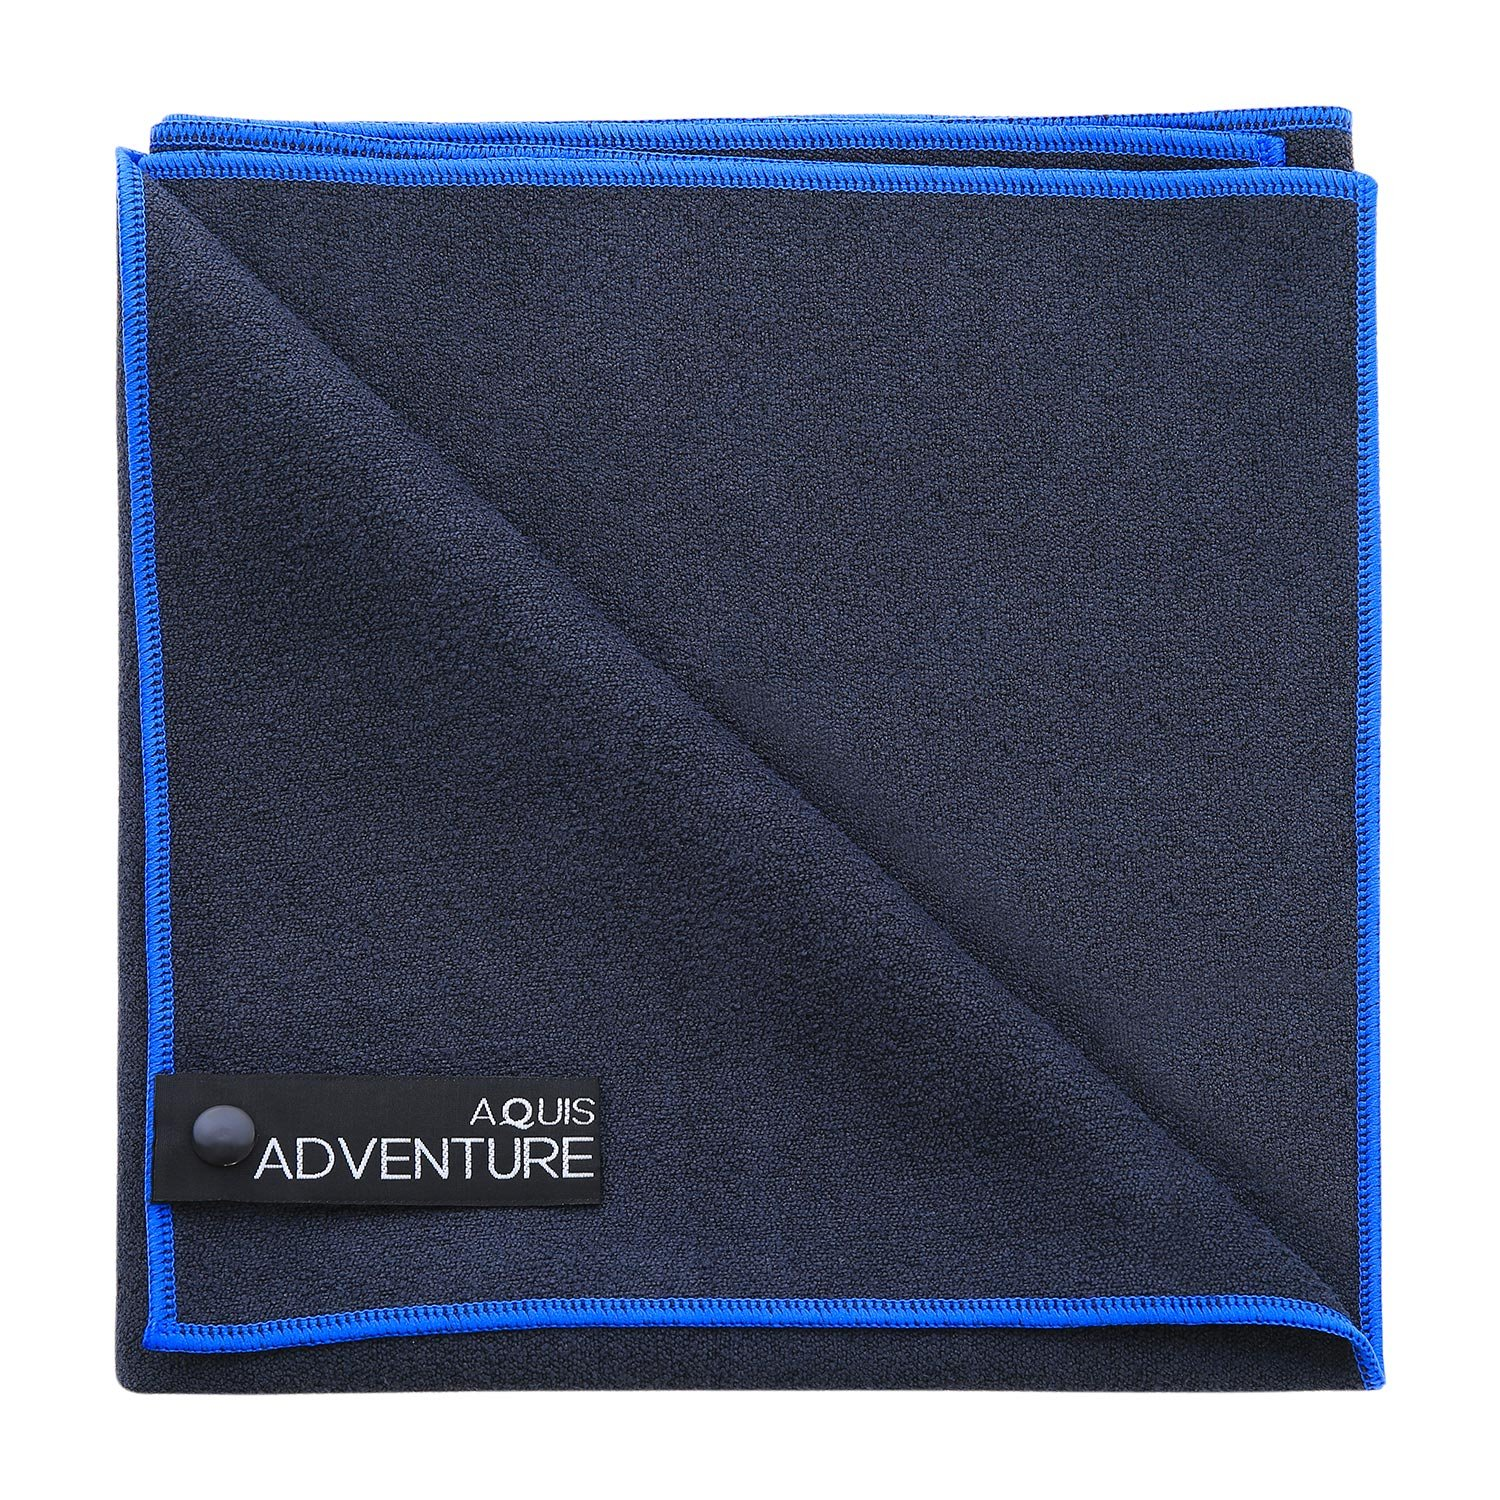 Aquis - Adventure Microfiber Sports Towel, Quick-Drying Comfort Great for Gym, Travel or Camping Towel, Black with Blue Trim (Large/19 x 39 Inches)